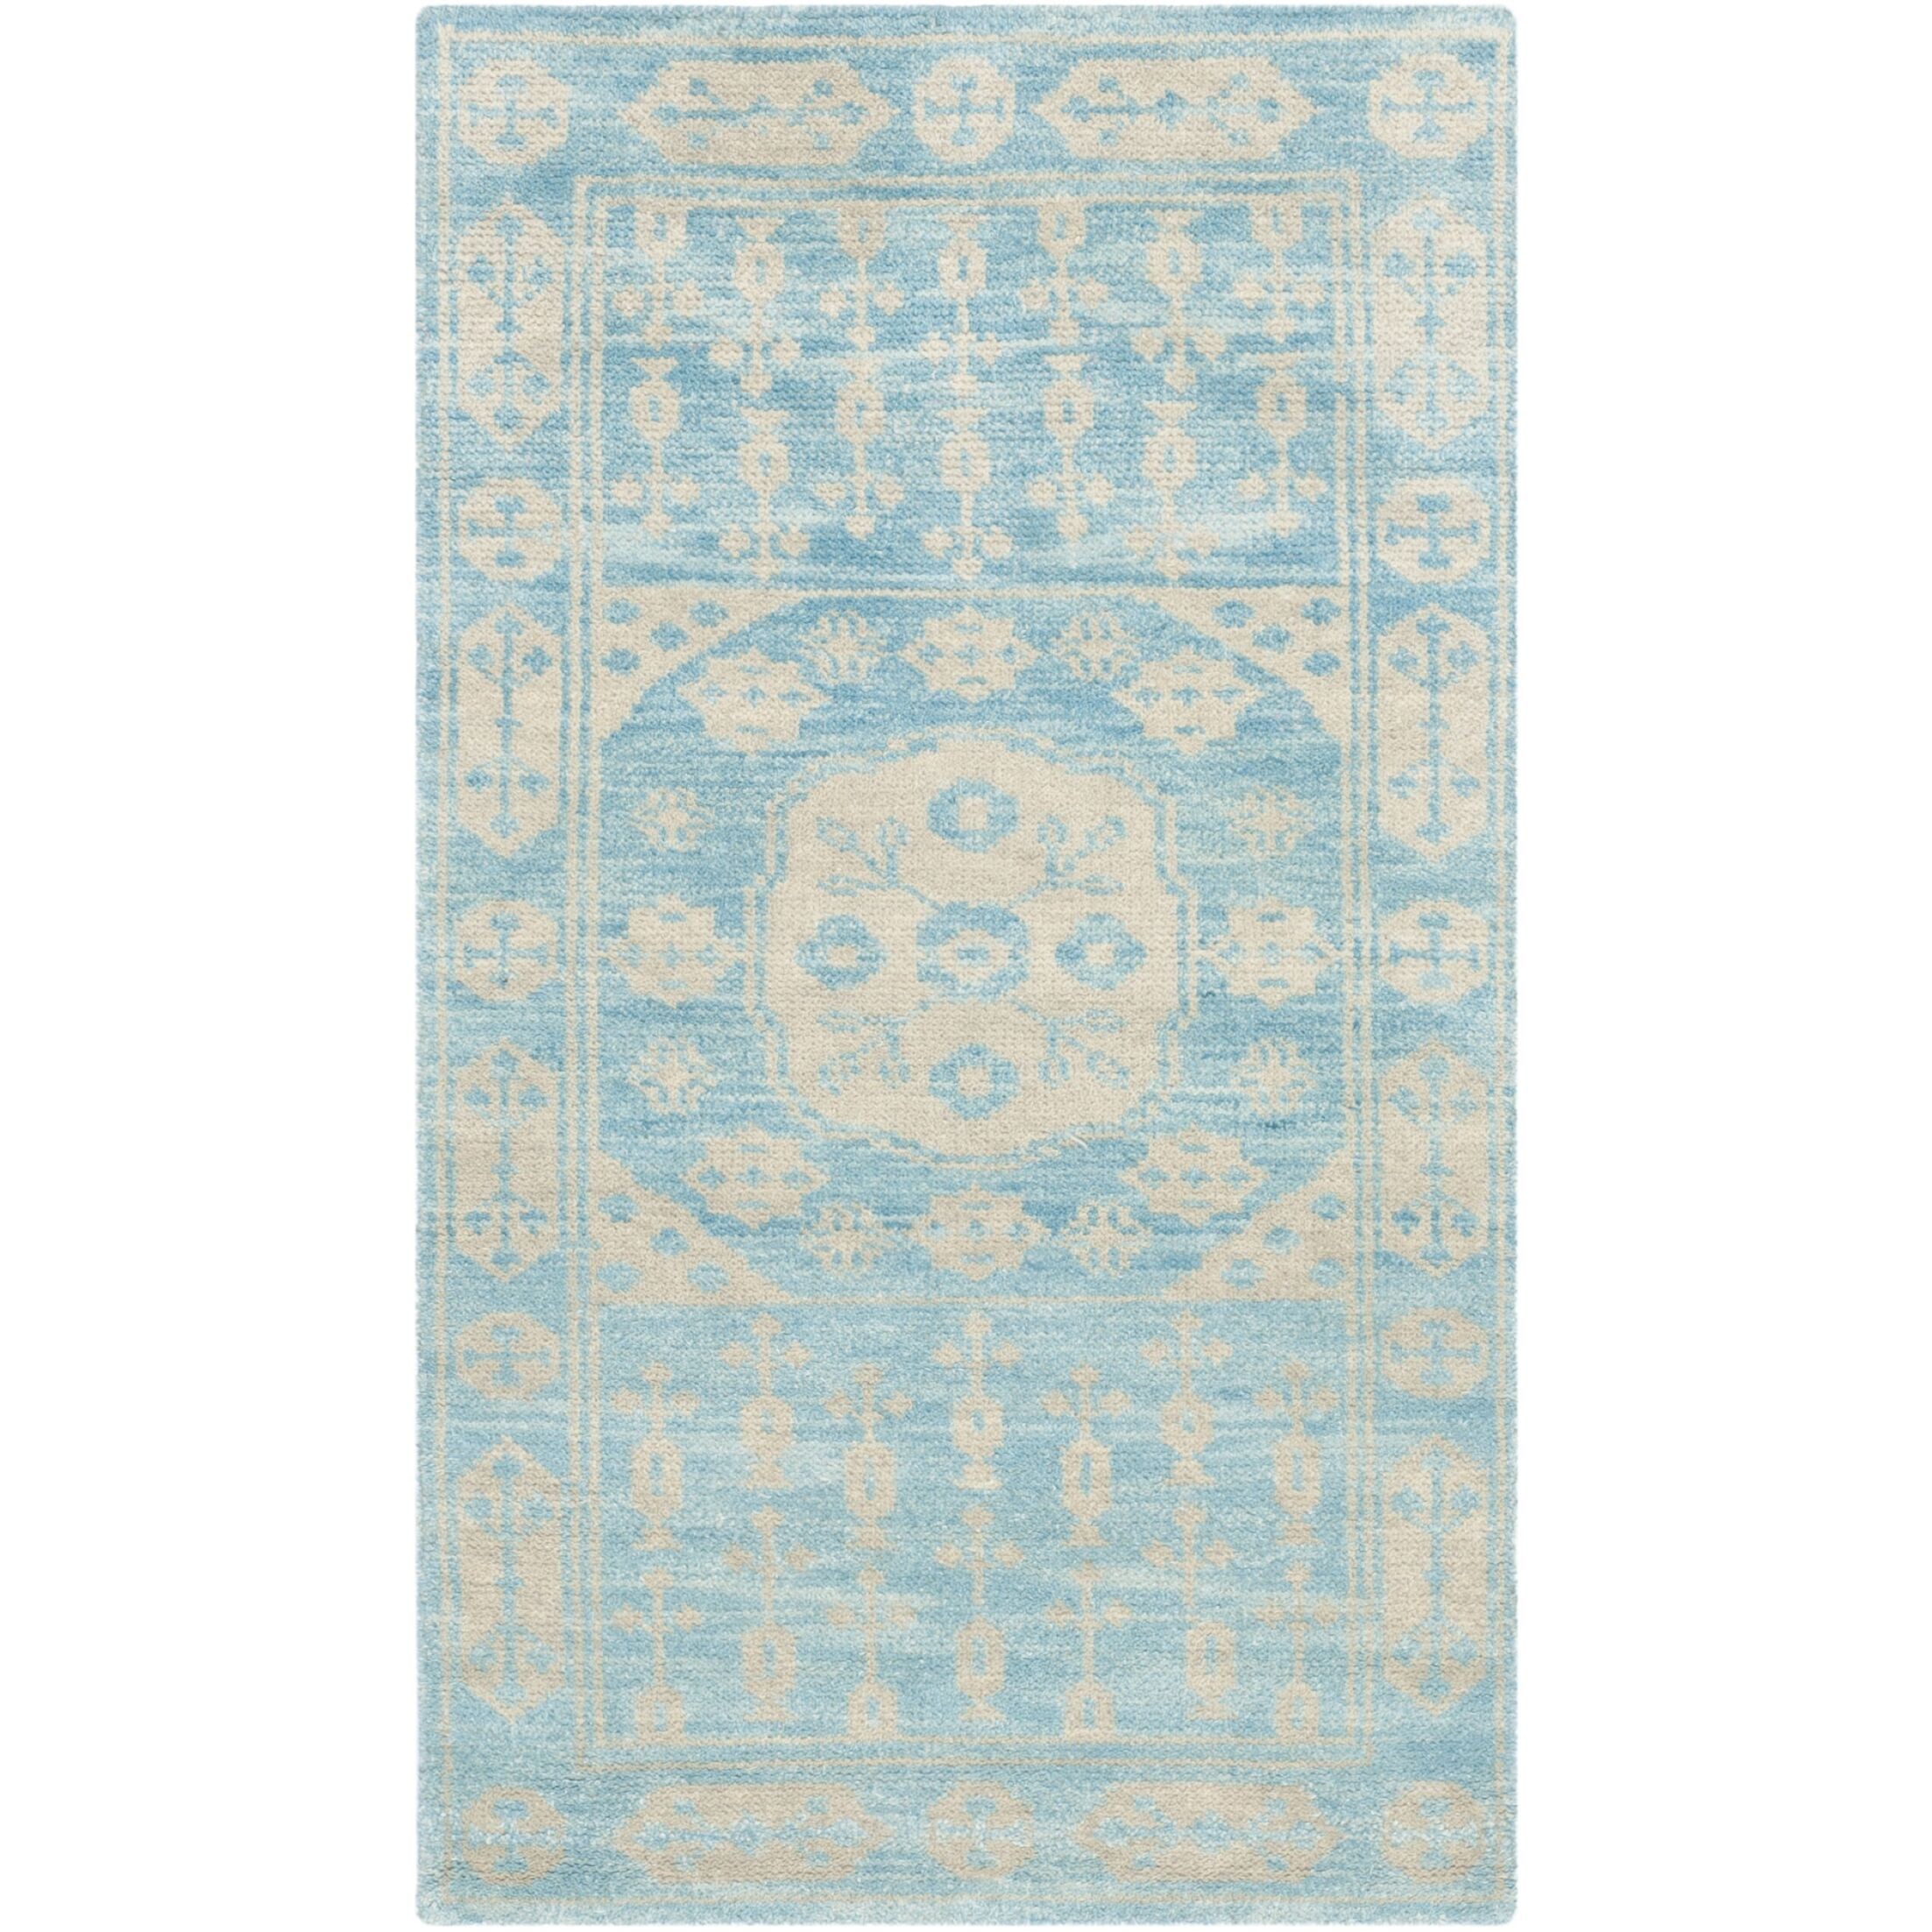 Maffei Blue Floral Plant Rug Rug Size: Rectangle 3' x 5'